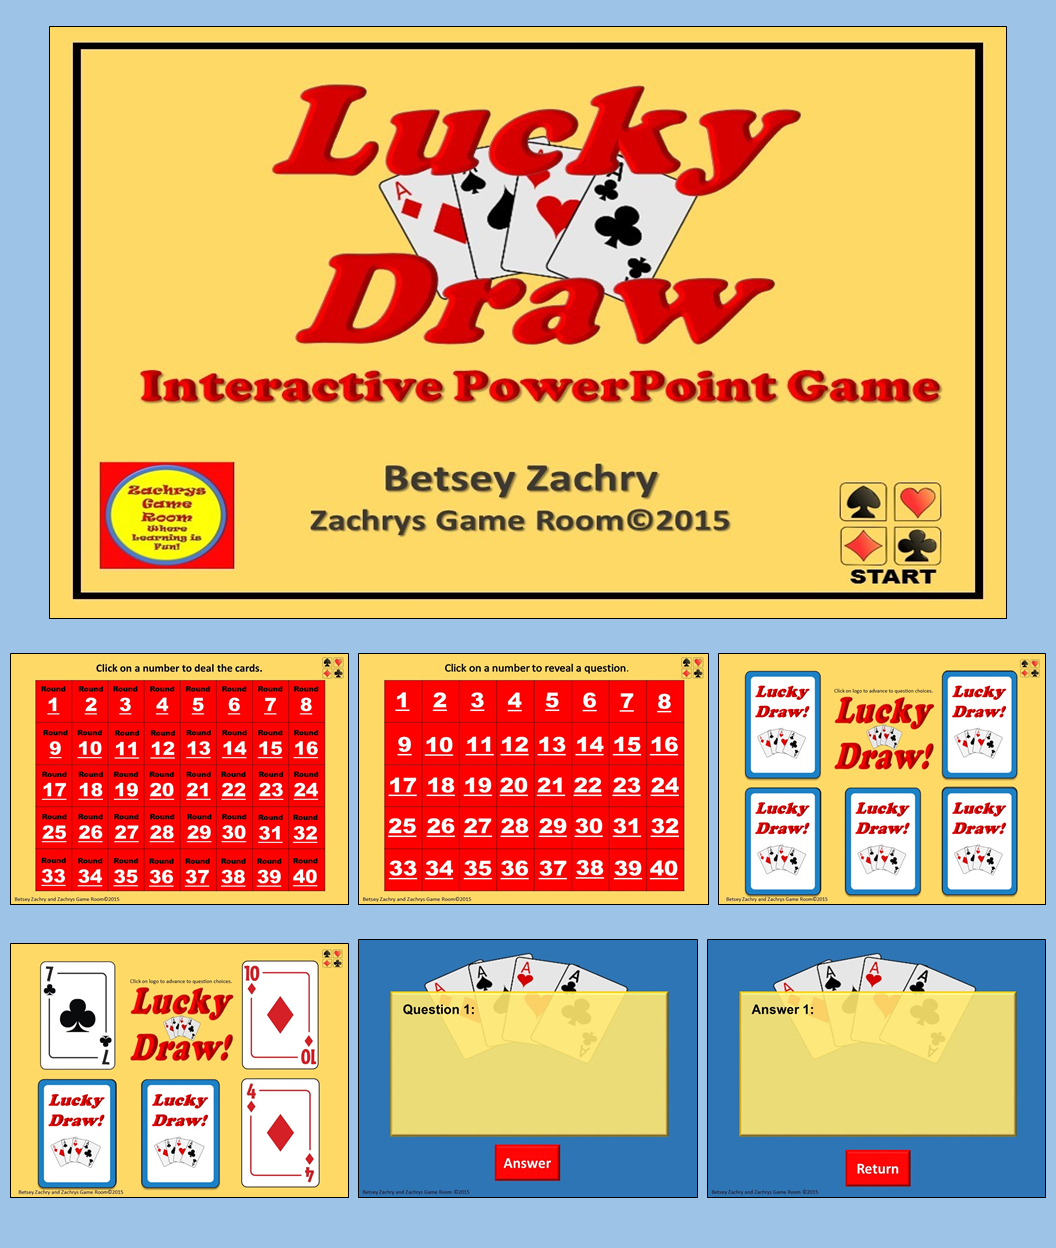 Powerpoint Game Template - Lucky Draw Interactive Game with regard to Powerpoint Template Games For Education